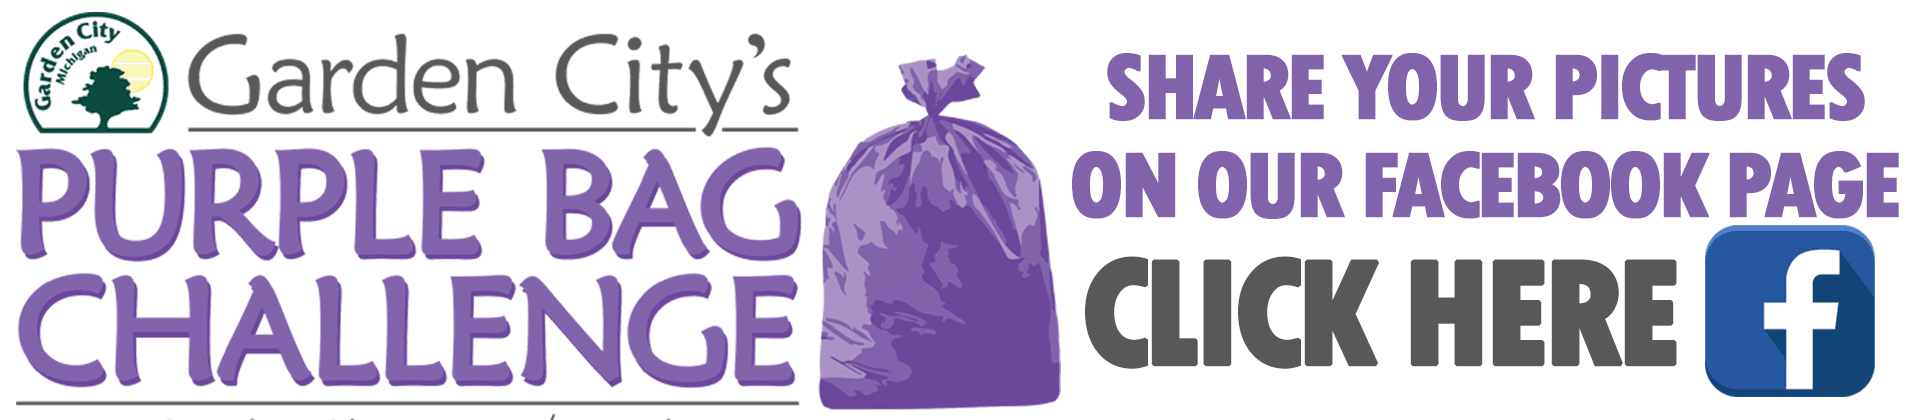 Share your pictures on the Purple Bag Challenge Facebook Page